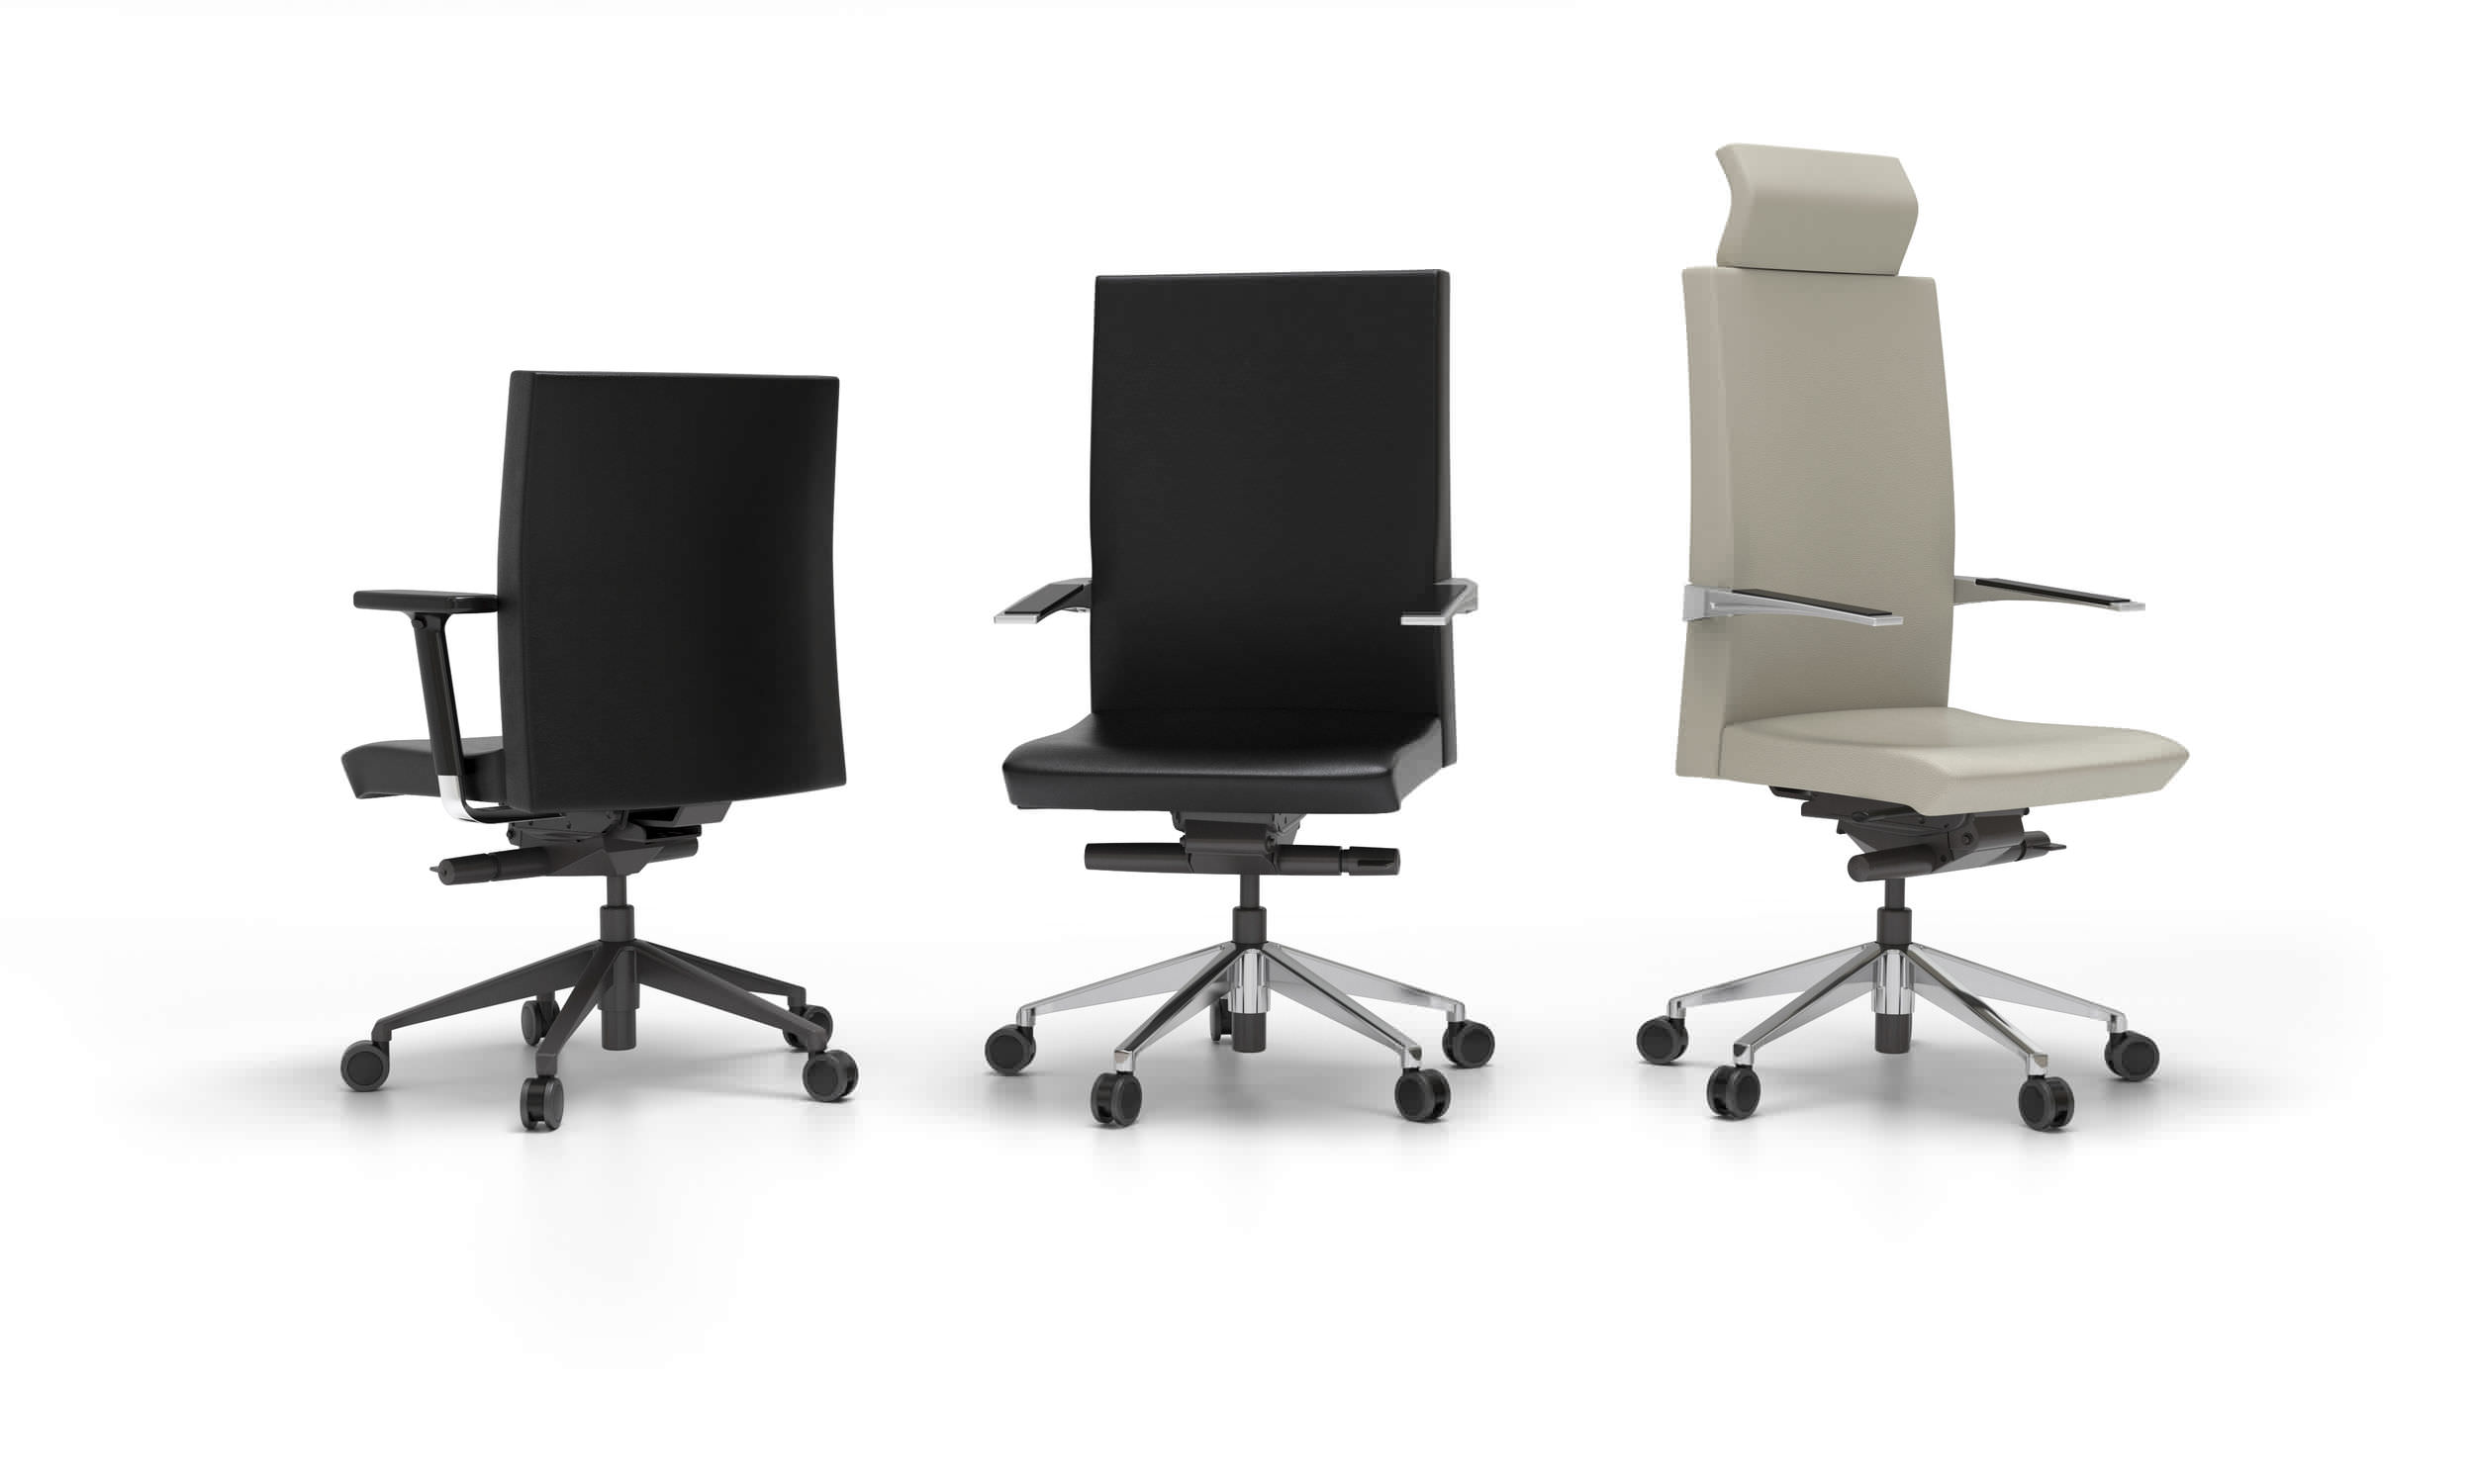 Contemporary office chair with armrests on casters star base